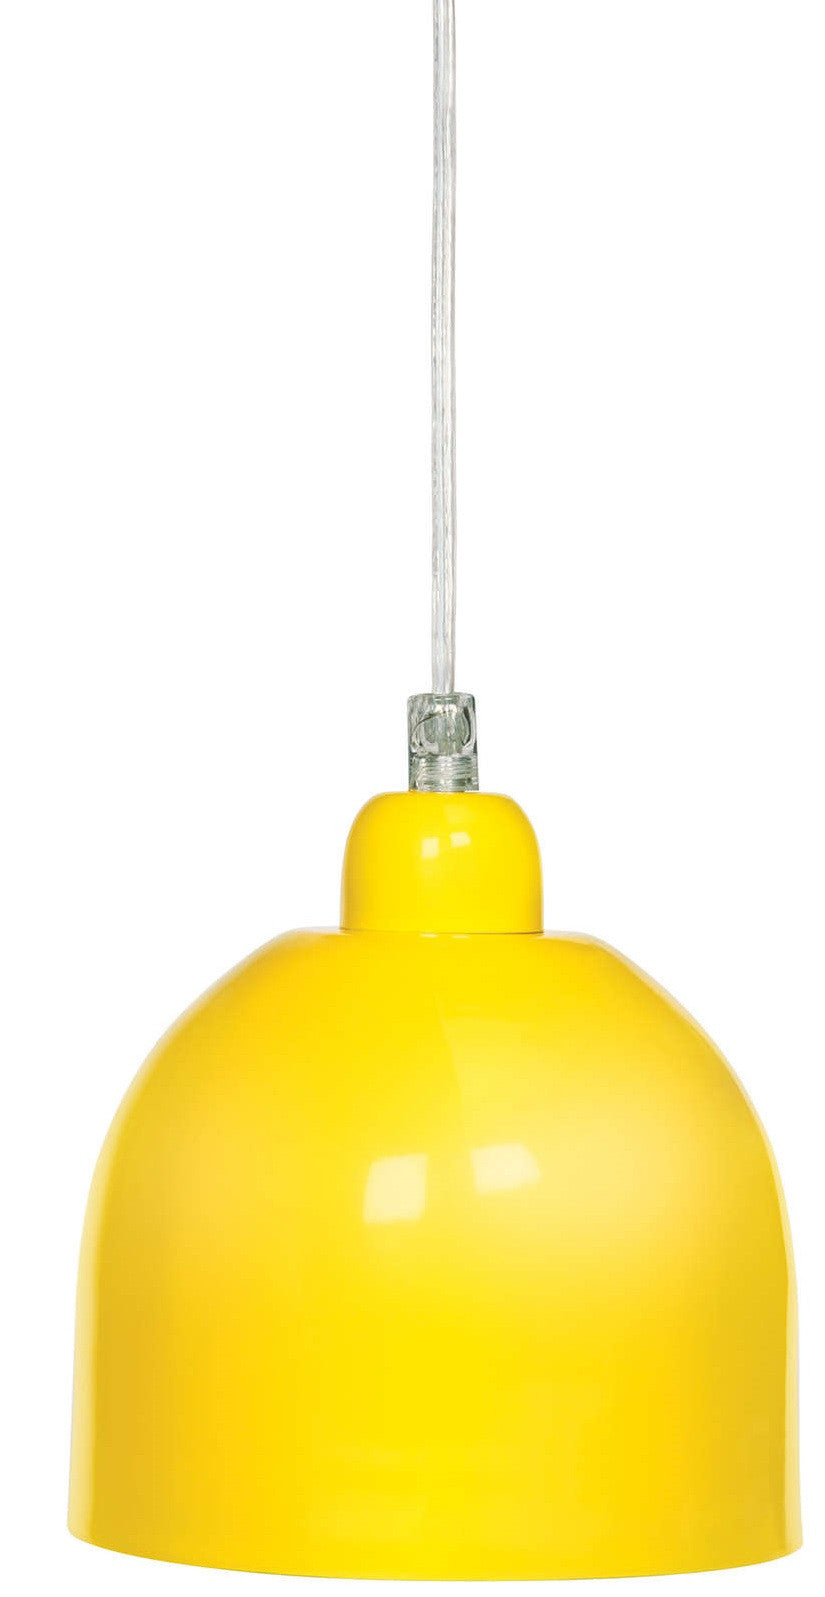 Philips LED Suspension Light (Yellow)